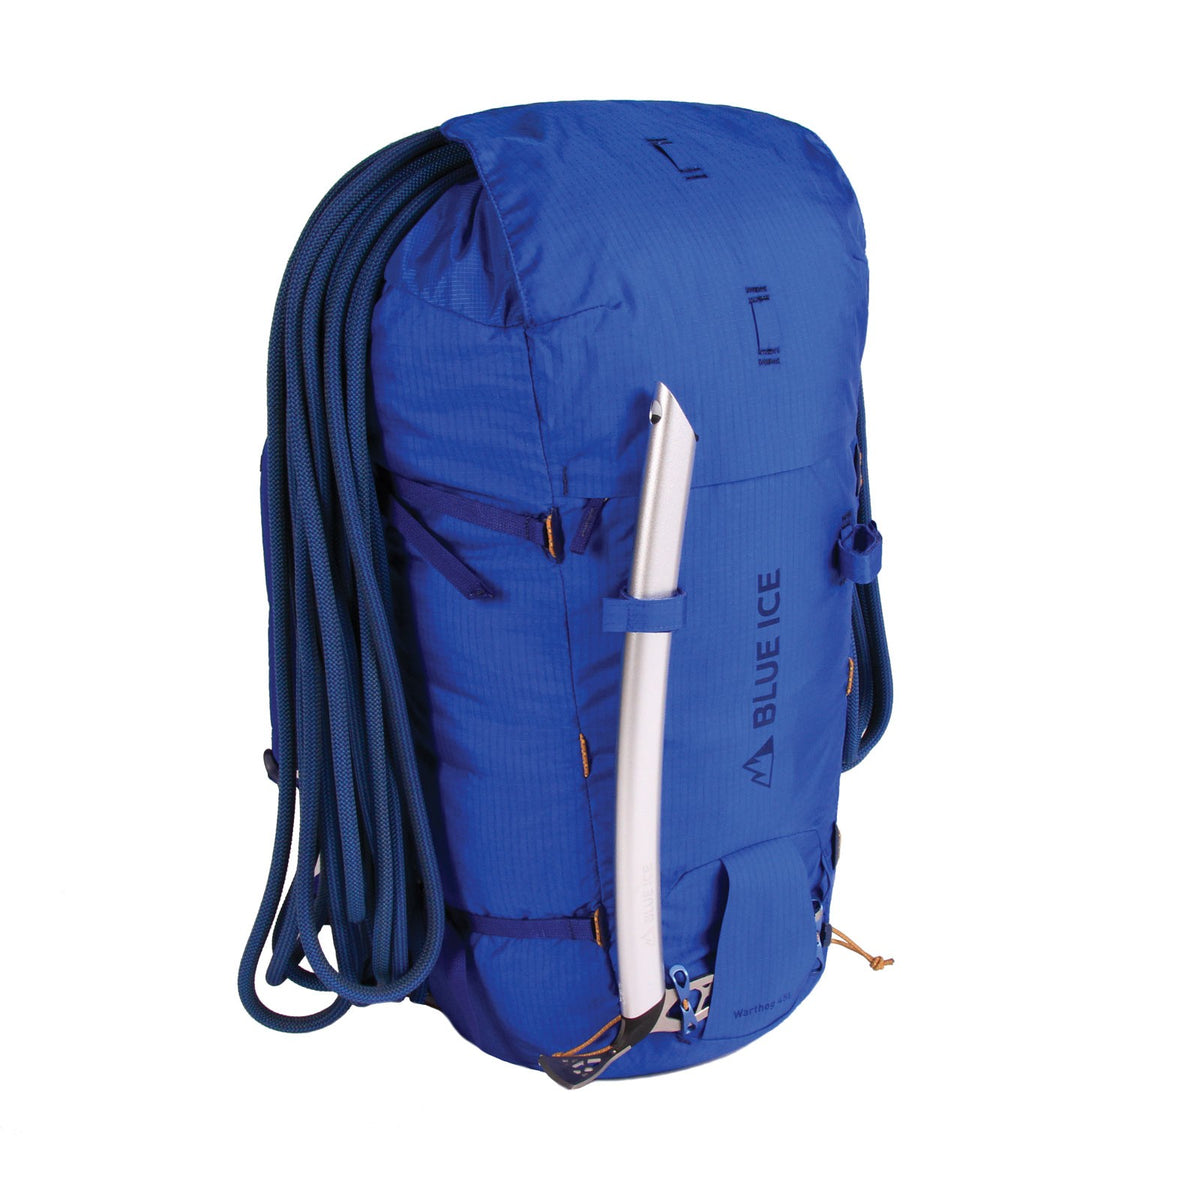 Blue Ice Warthog 45L rucksack, shown with climbing rope and ice pick